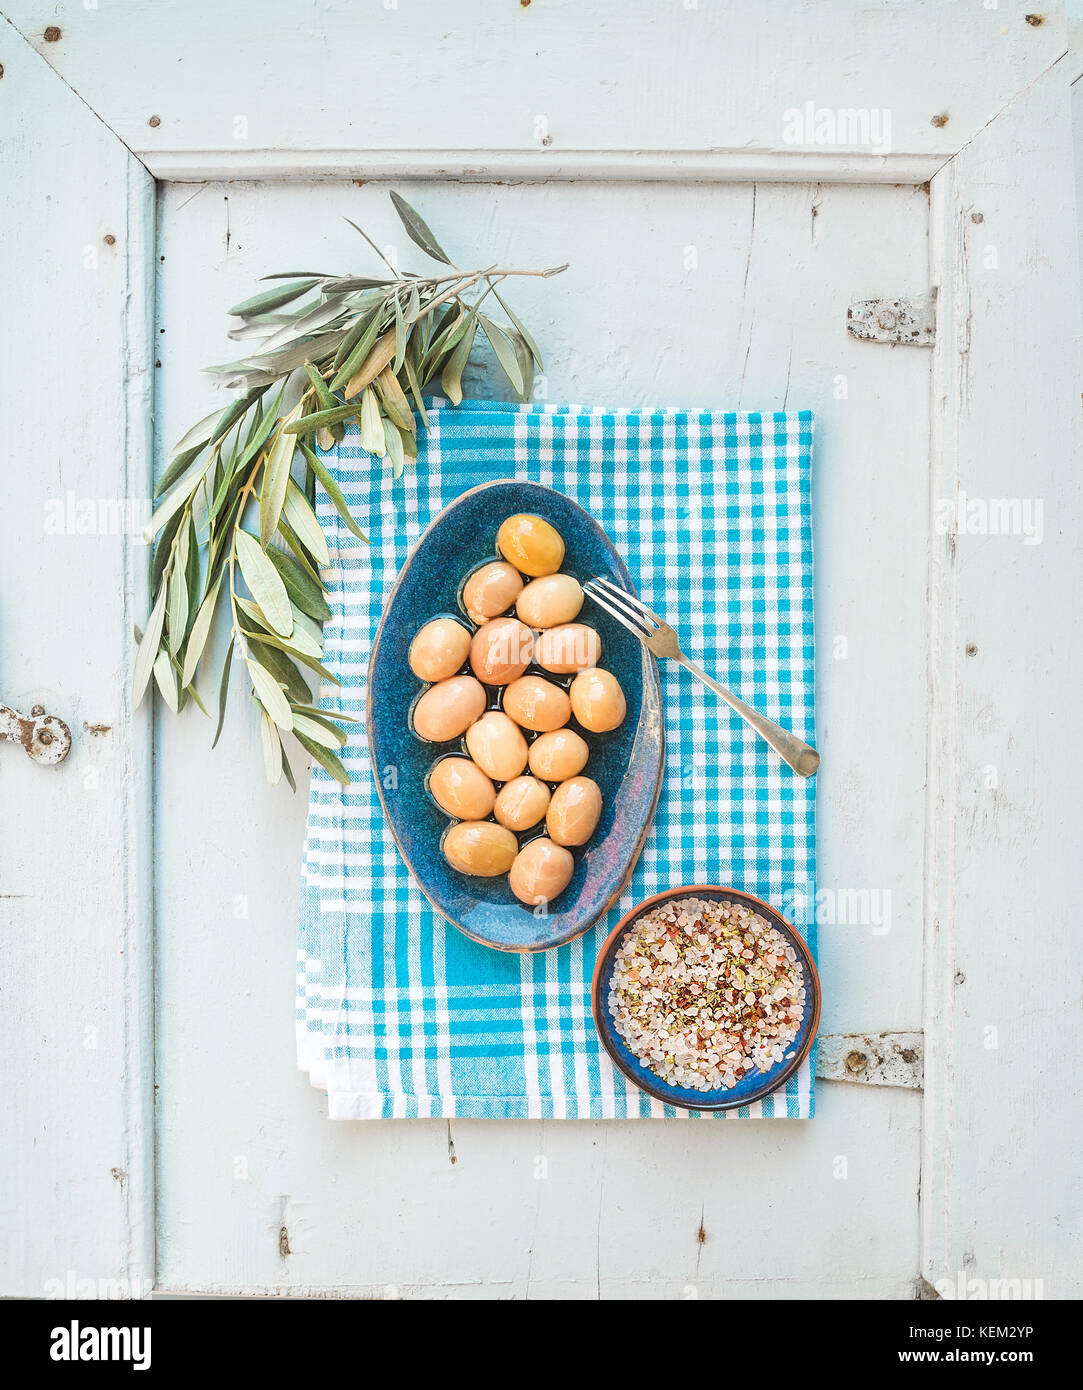 Green big olives in blue ceramic plate with tree branch and spices on kitchen towel over light blue background, - Stock Image